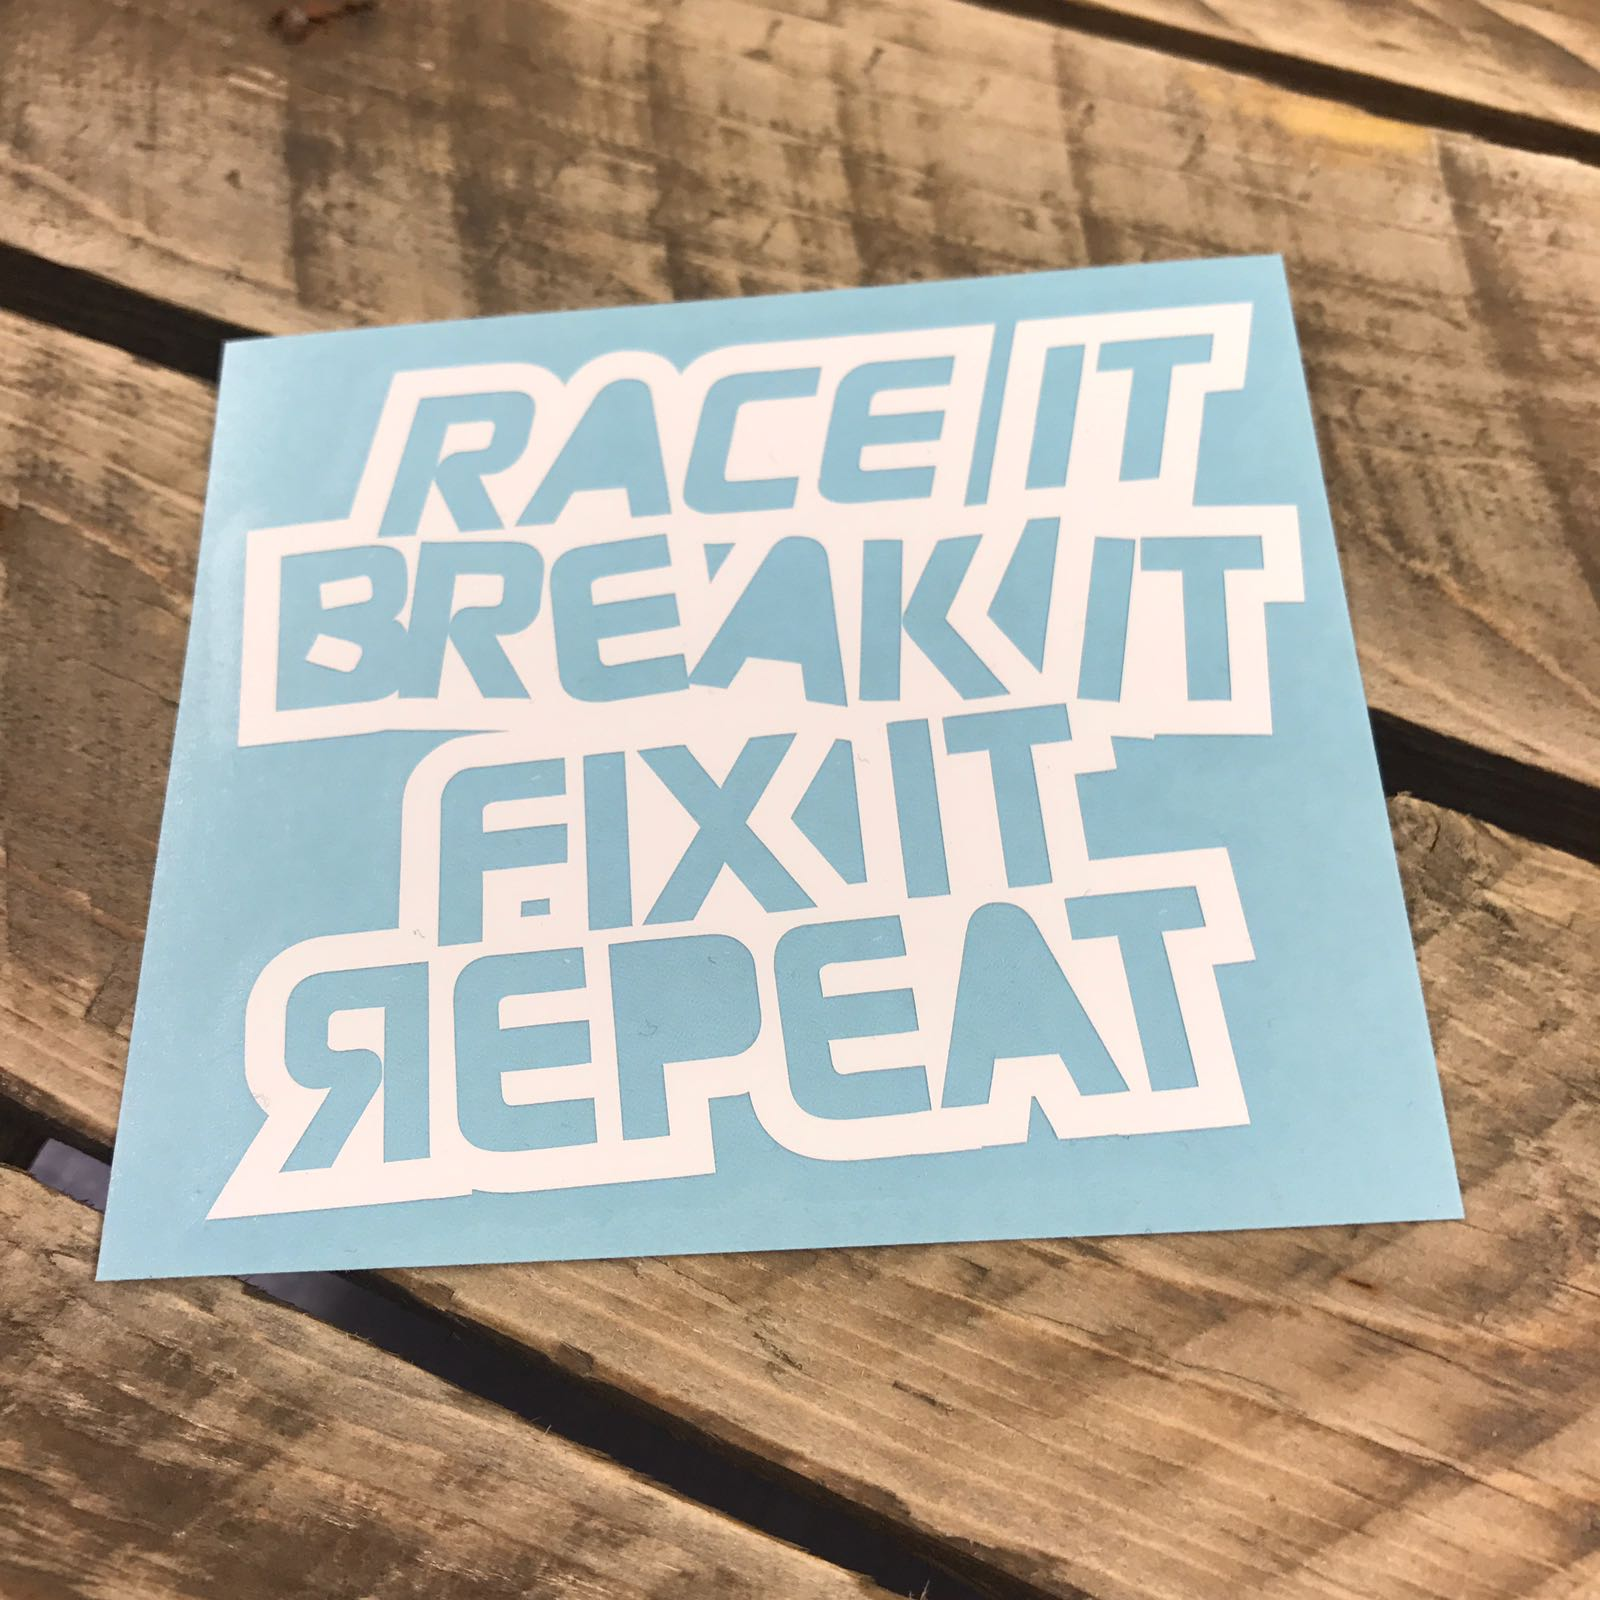 Race It, Break It, Fix It, Repeat